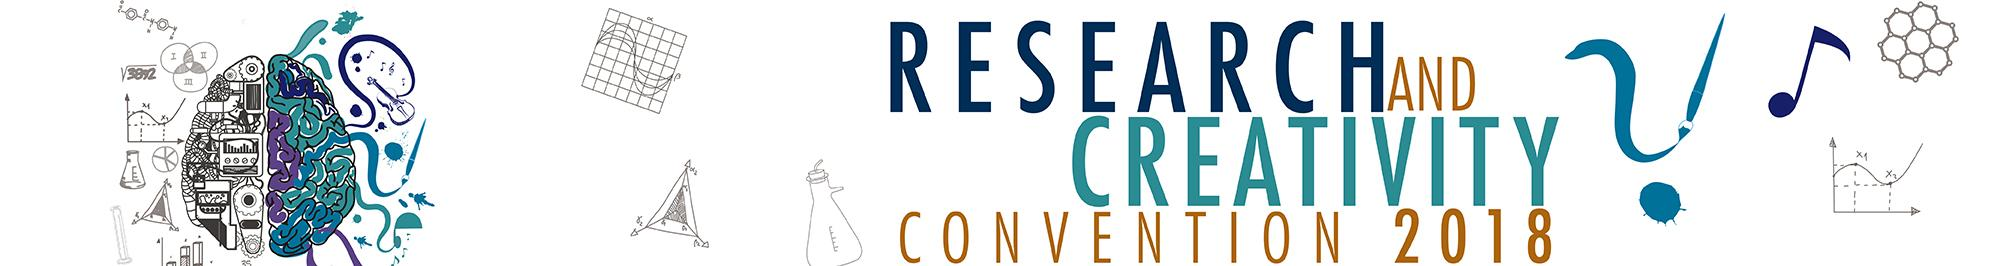 research_creativity_convention2018